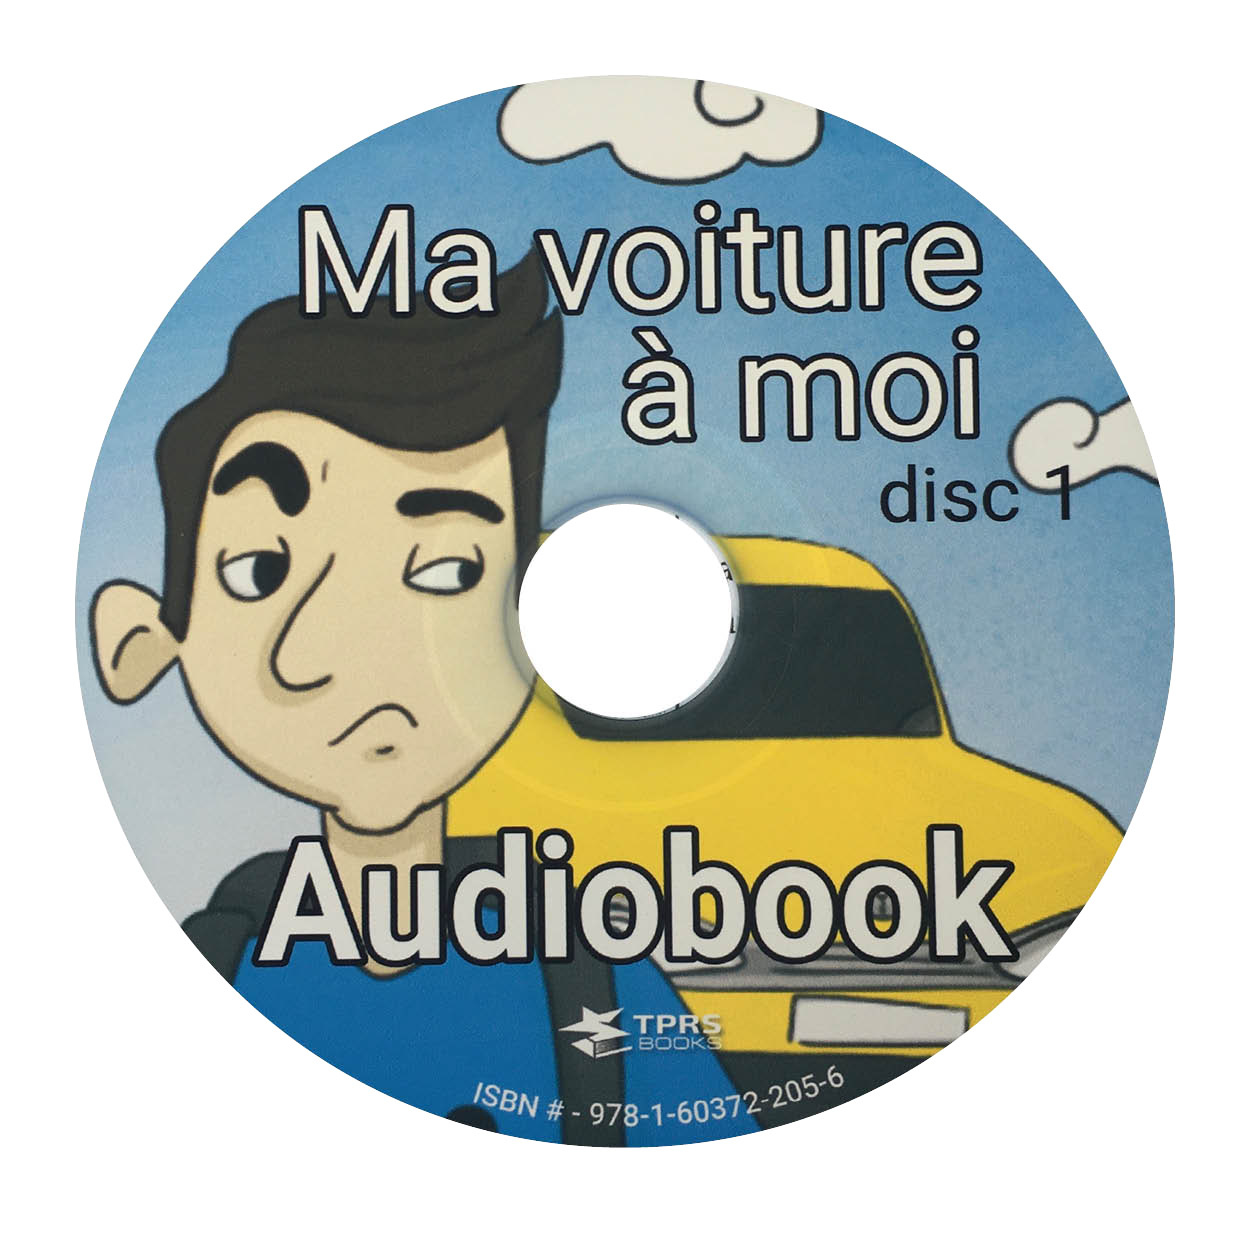 Ma voiture, à moi - Audiobook